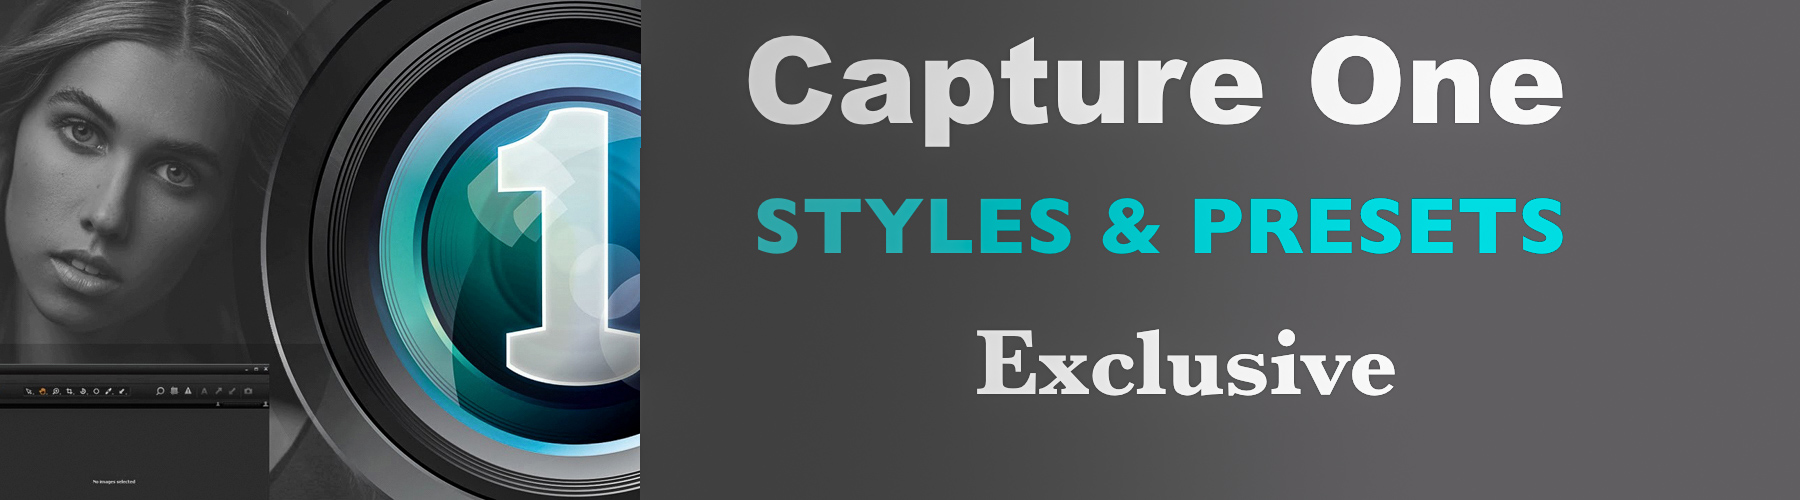 PREMIUM and FREE Capture One Styles and Presets from PixaFOTO.com